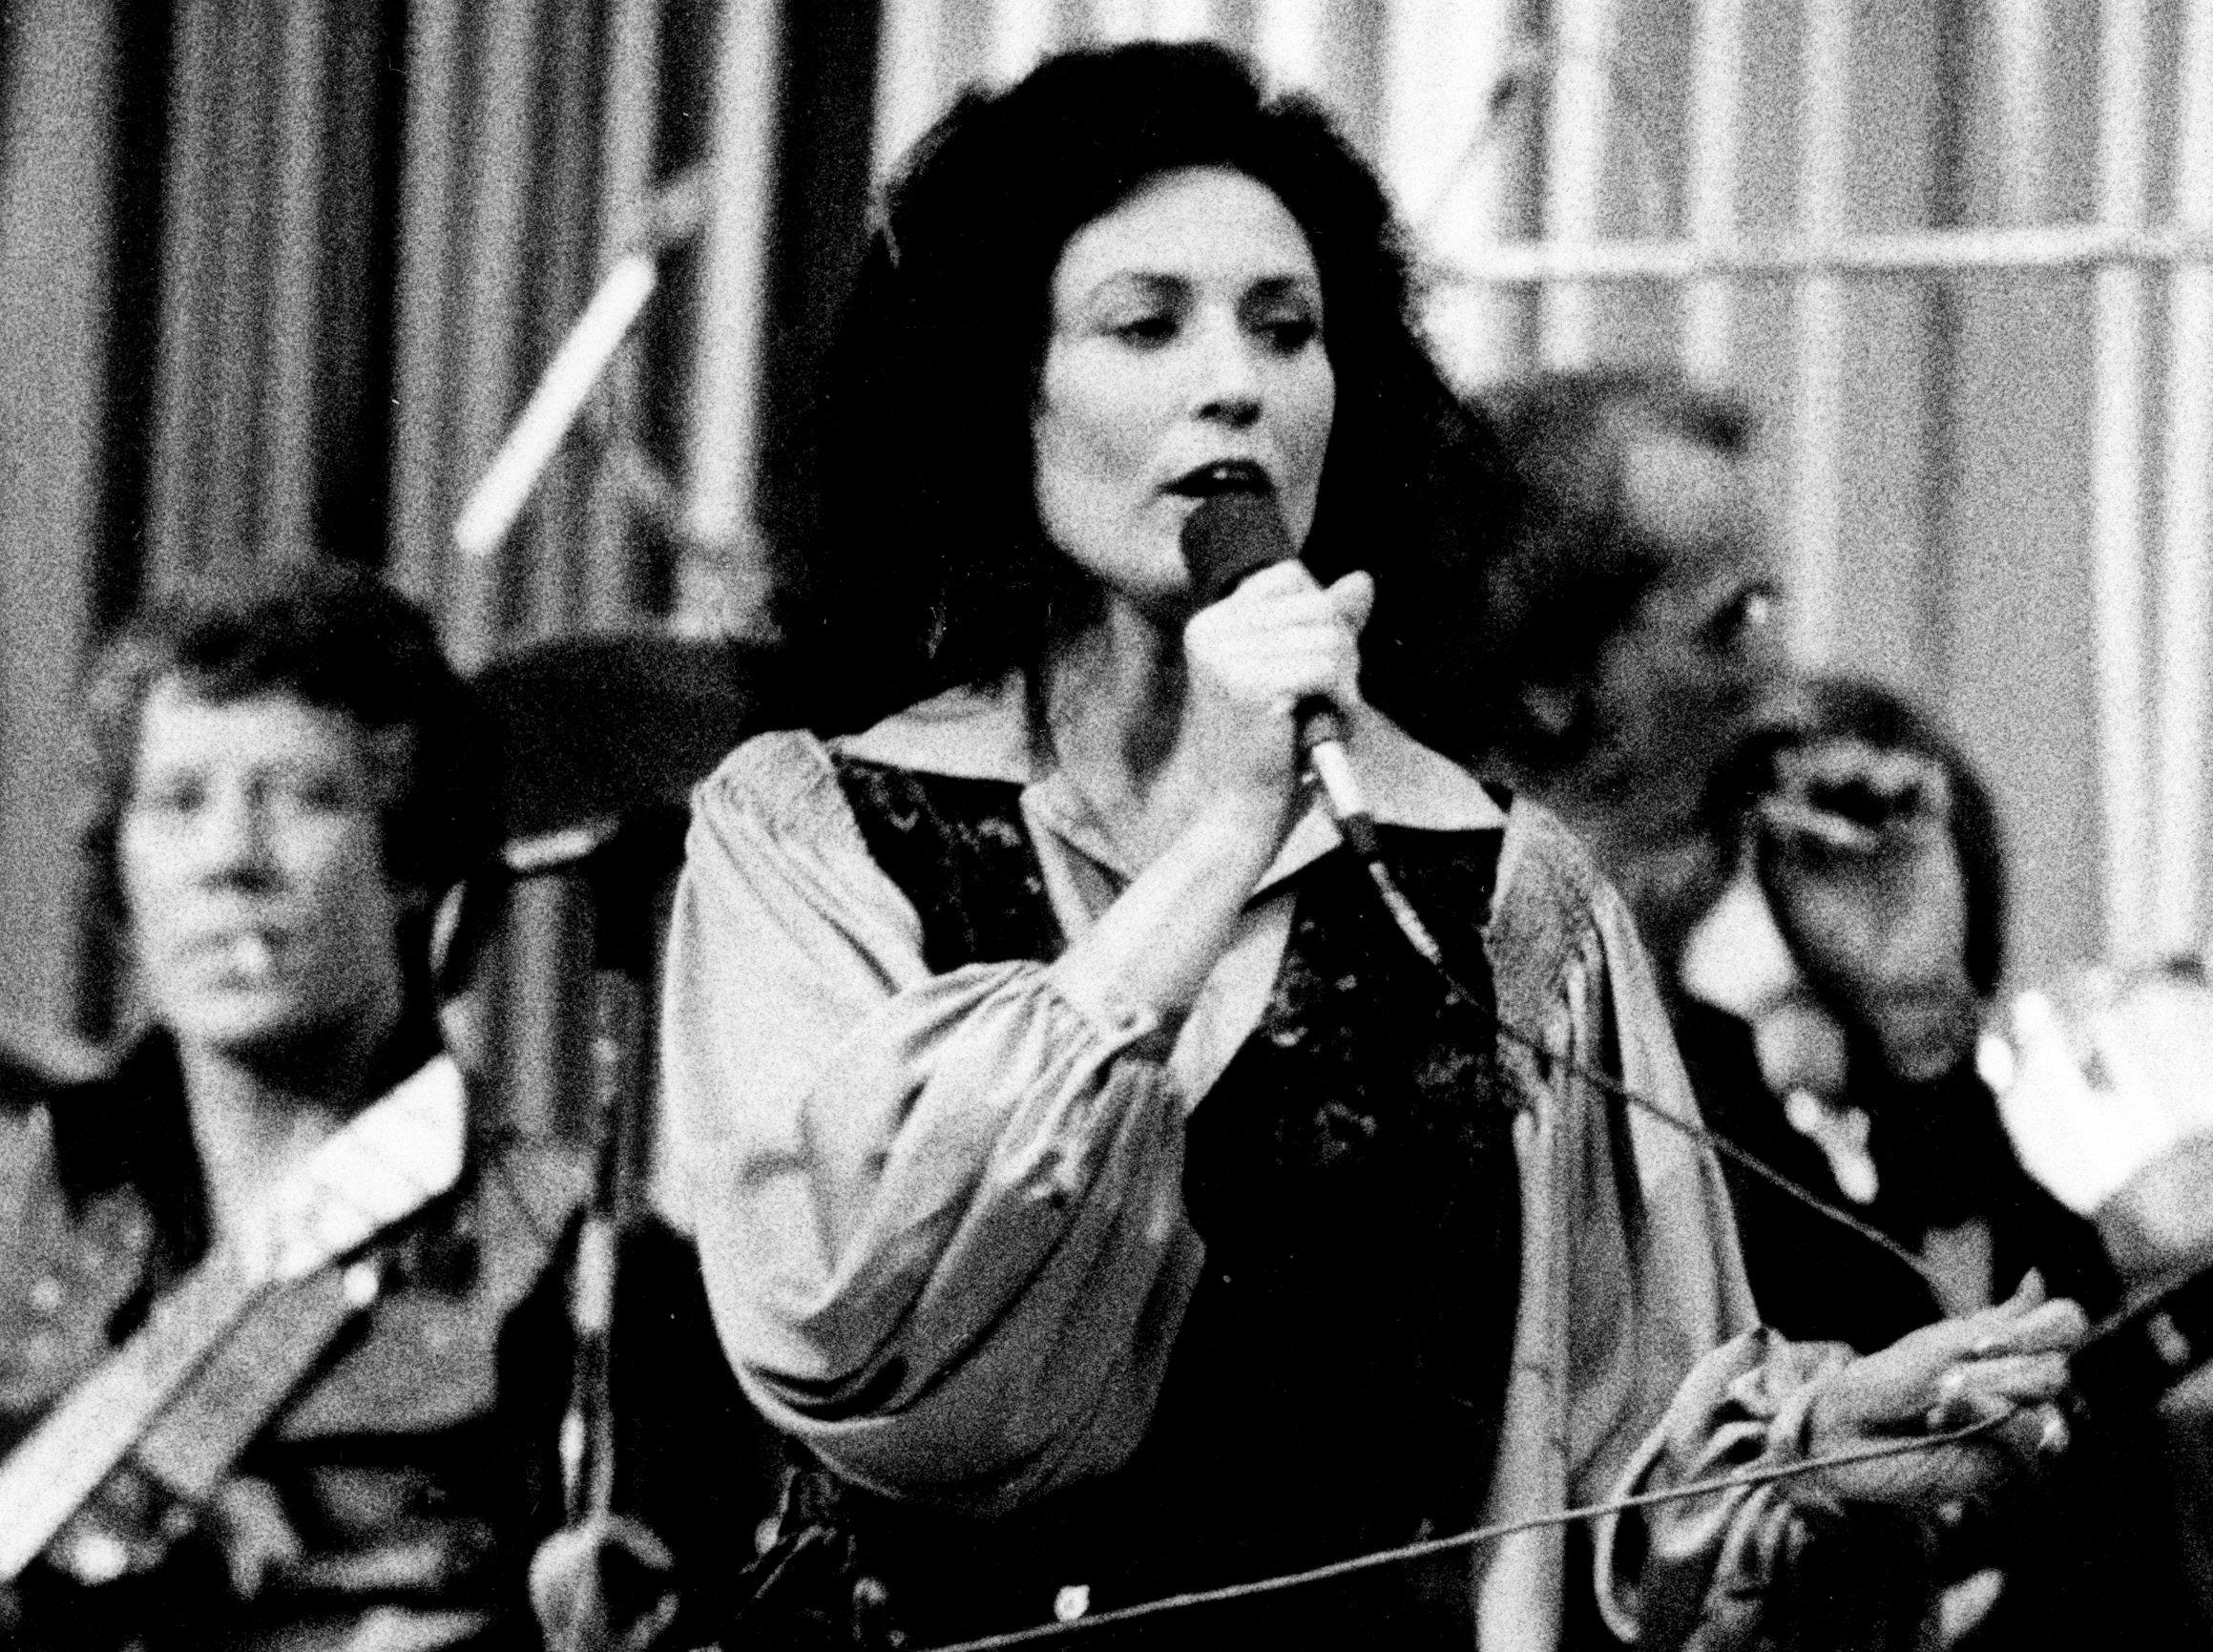 """Loretta Lynn wows the Municipal Auditorium crowd with a surprise performance during the filming of one of the biggest scenes in """"Coal Miner's Daughter"""" in Nashville April 24, 1979. Her first song? It was same as the title of the movie."""